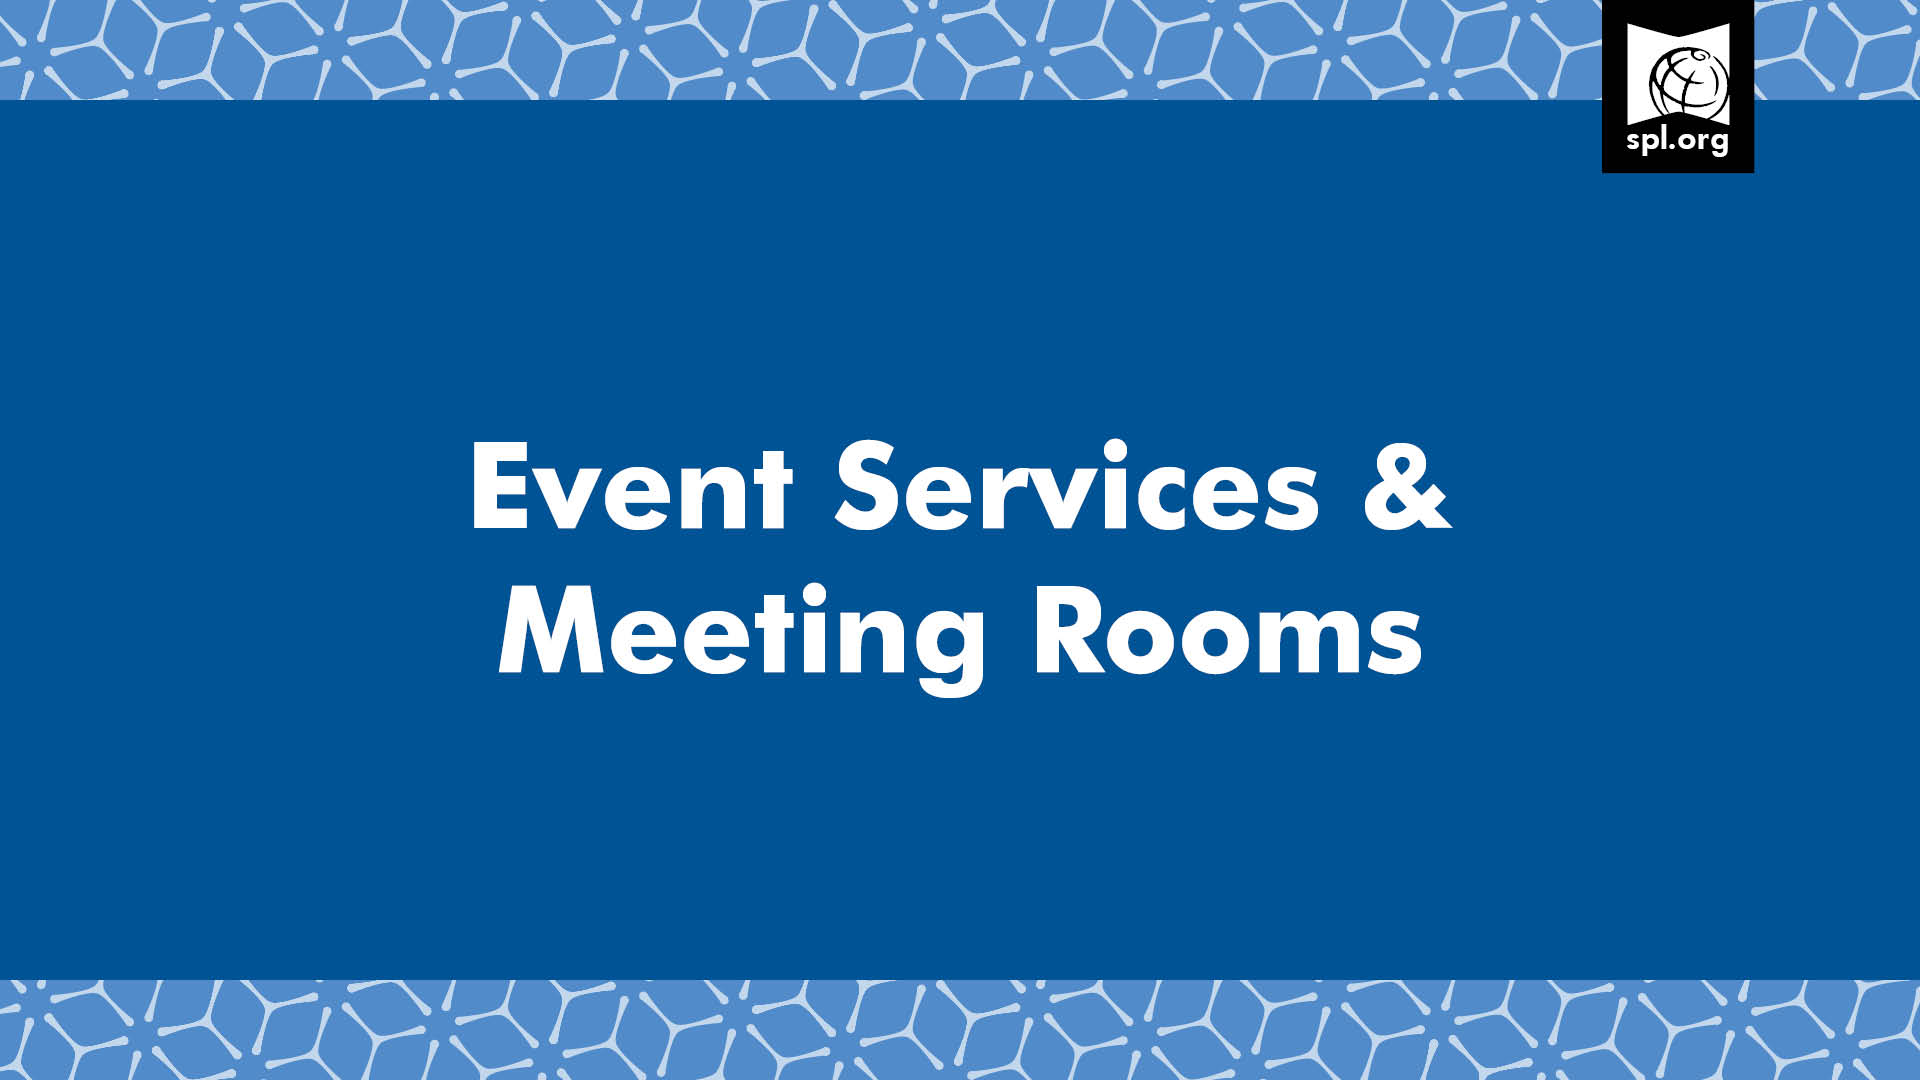 Event services and meeting rooms graphic